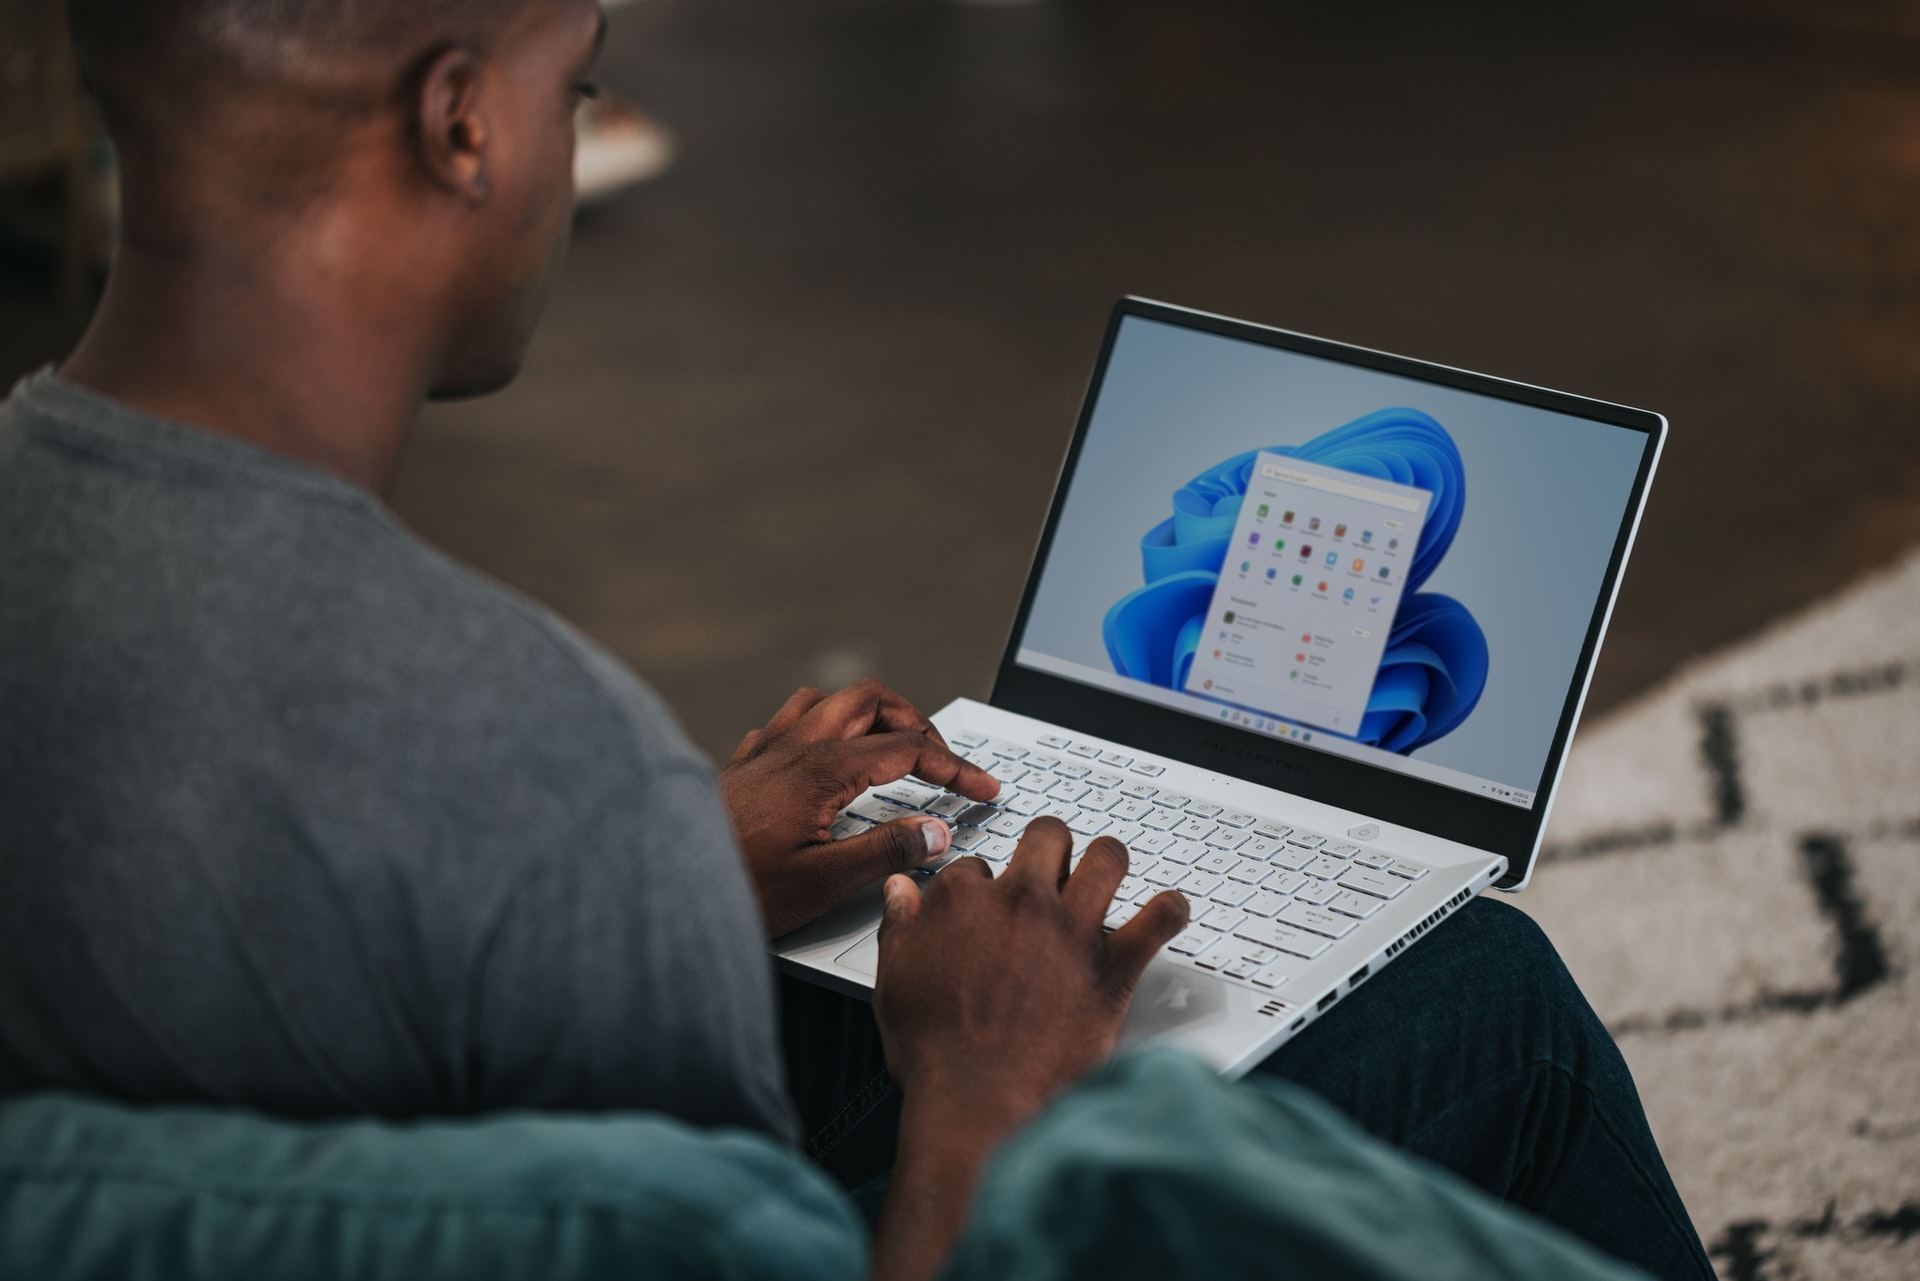 Windows 11 is what Microsoft really wanted to do?